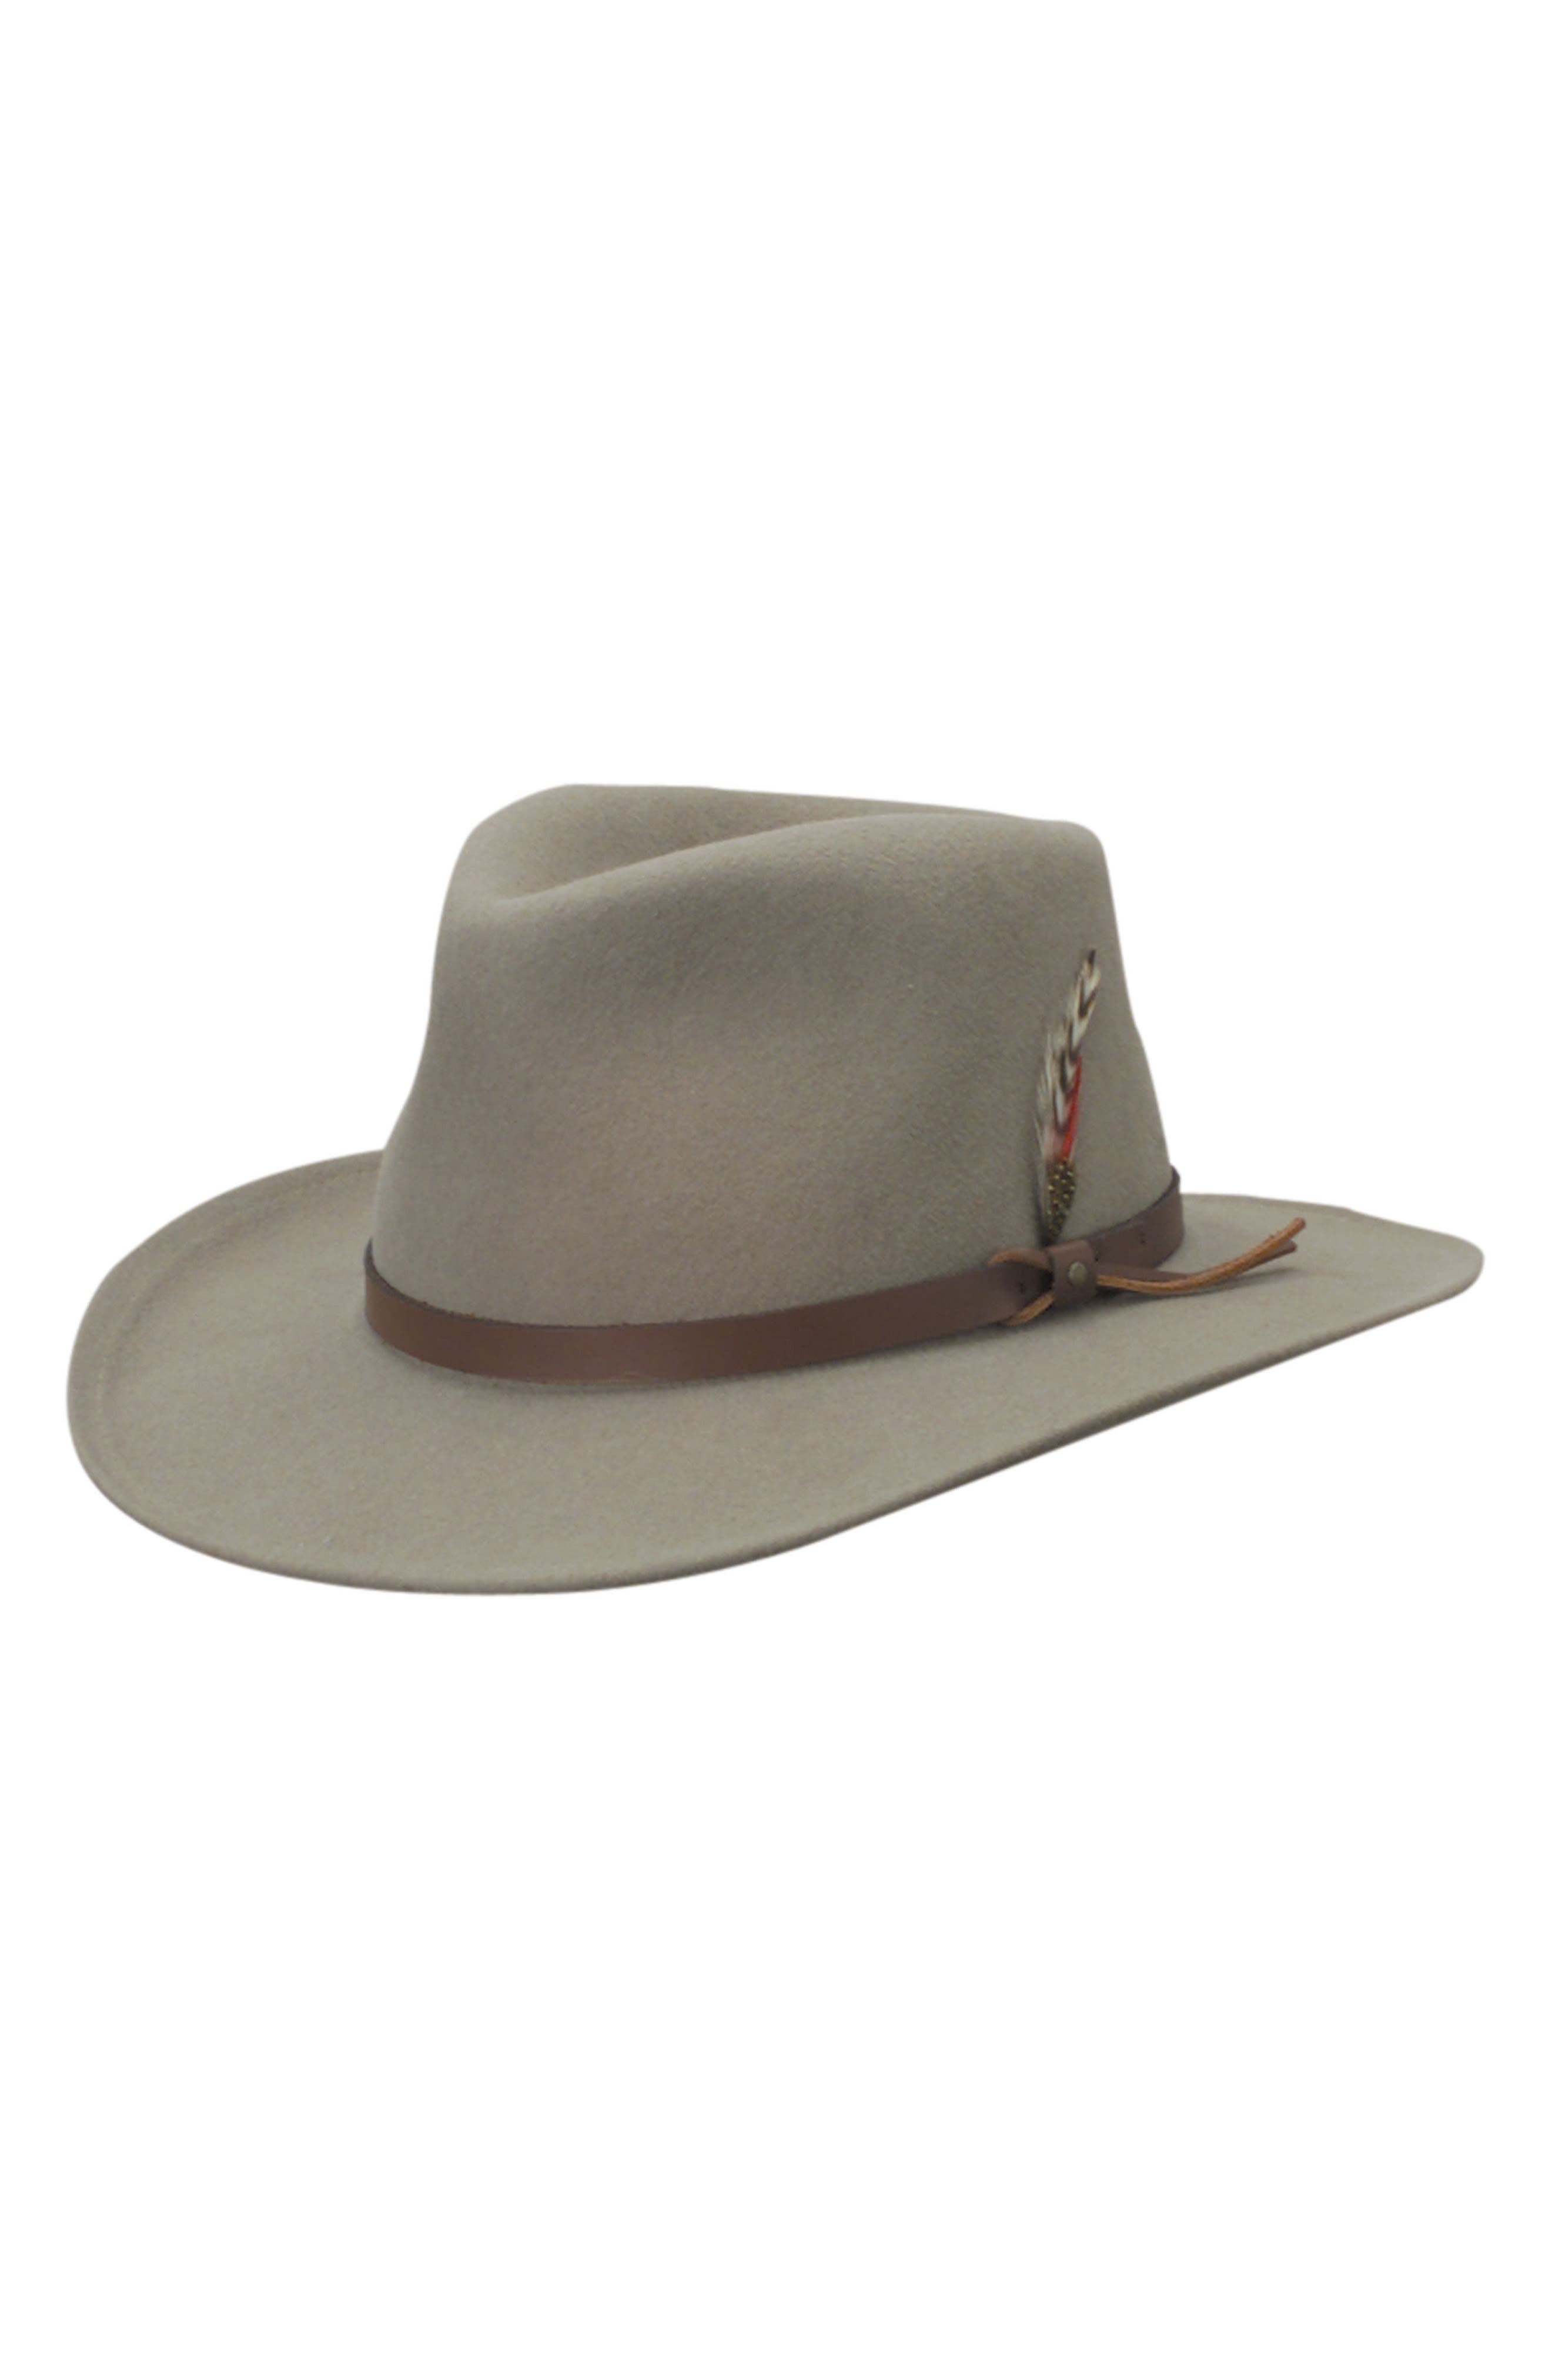 'Classico' Crushable Felt Outback Hat,                         Main,                         color, 050